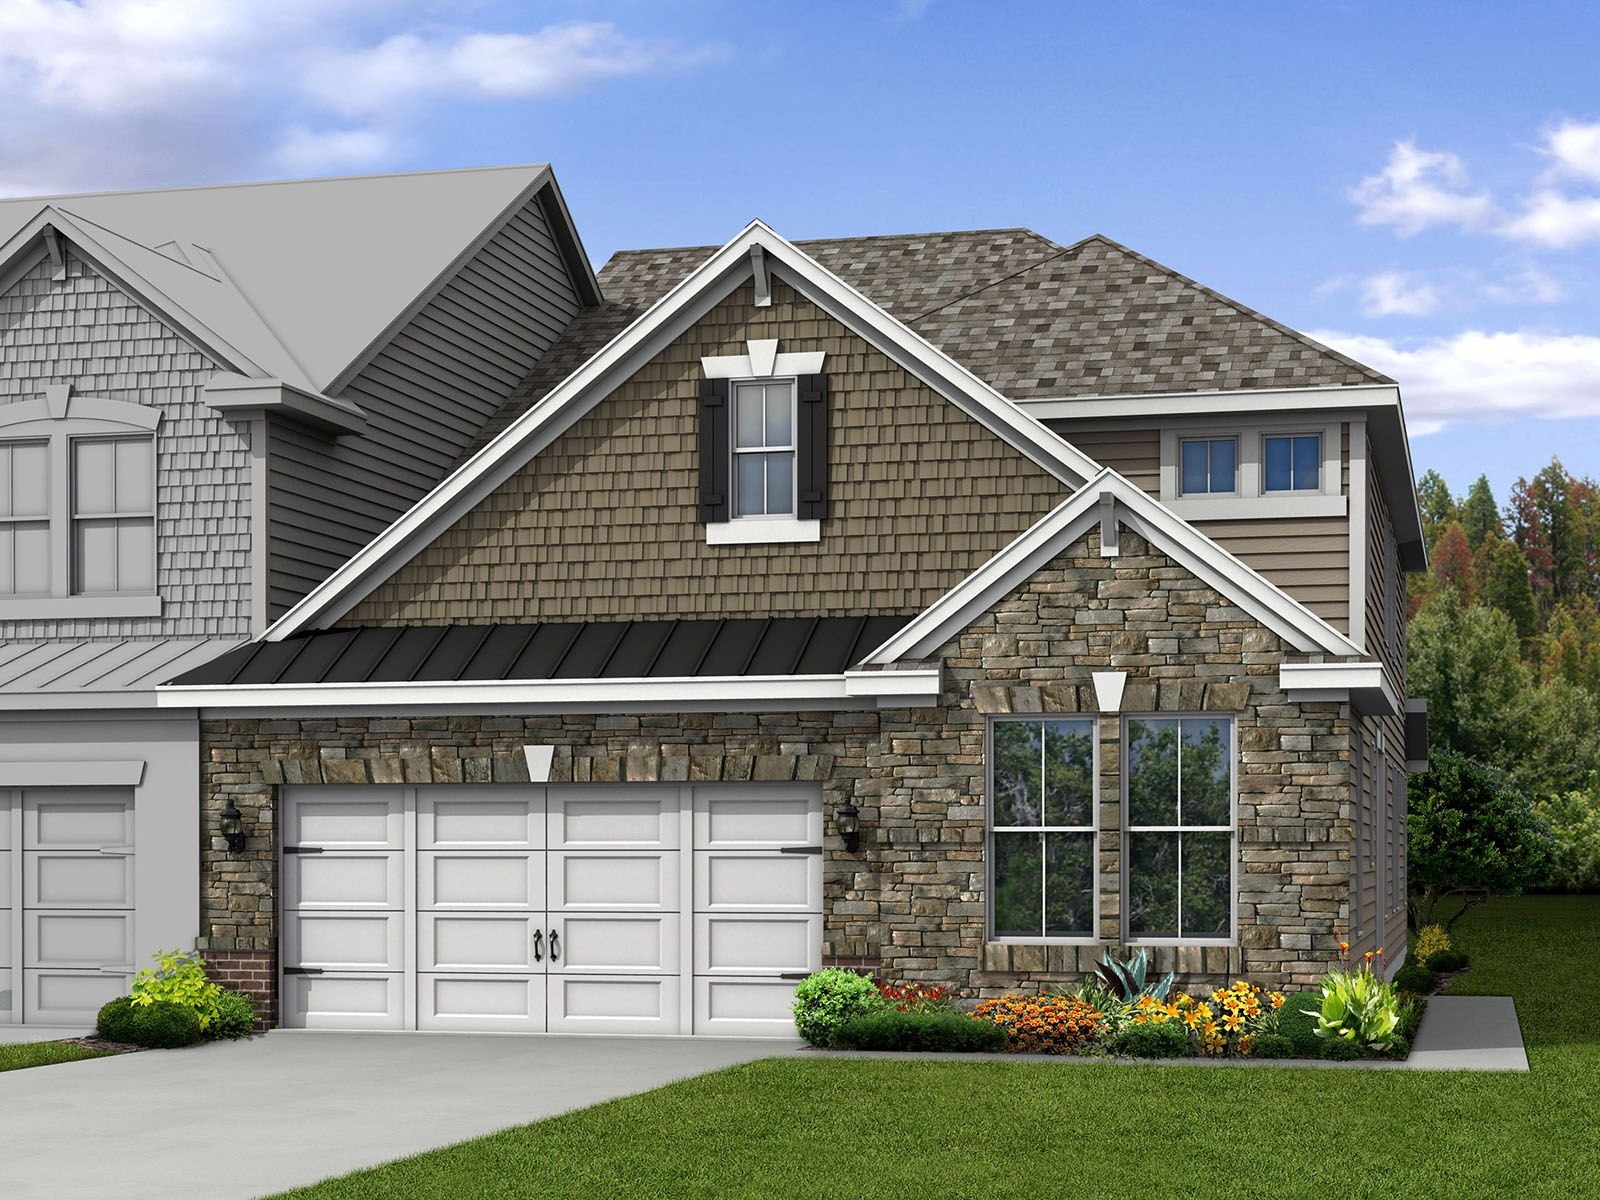 New homes in rolesville nc homes for sale new home for New home source